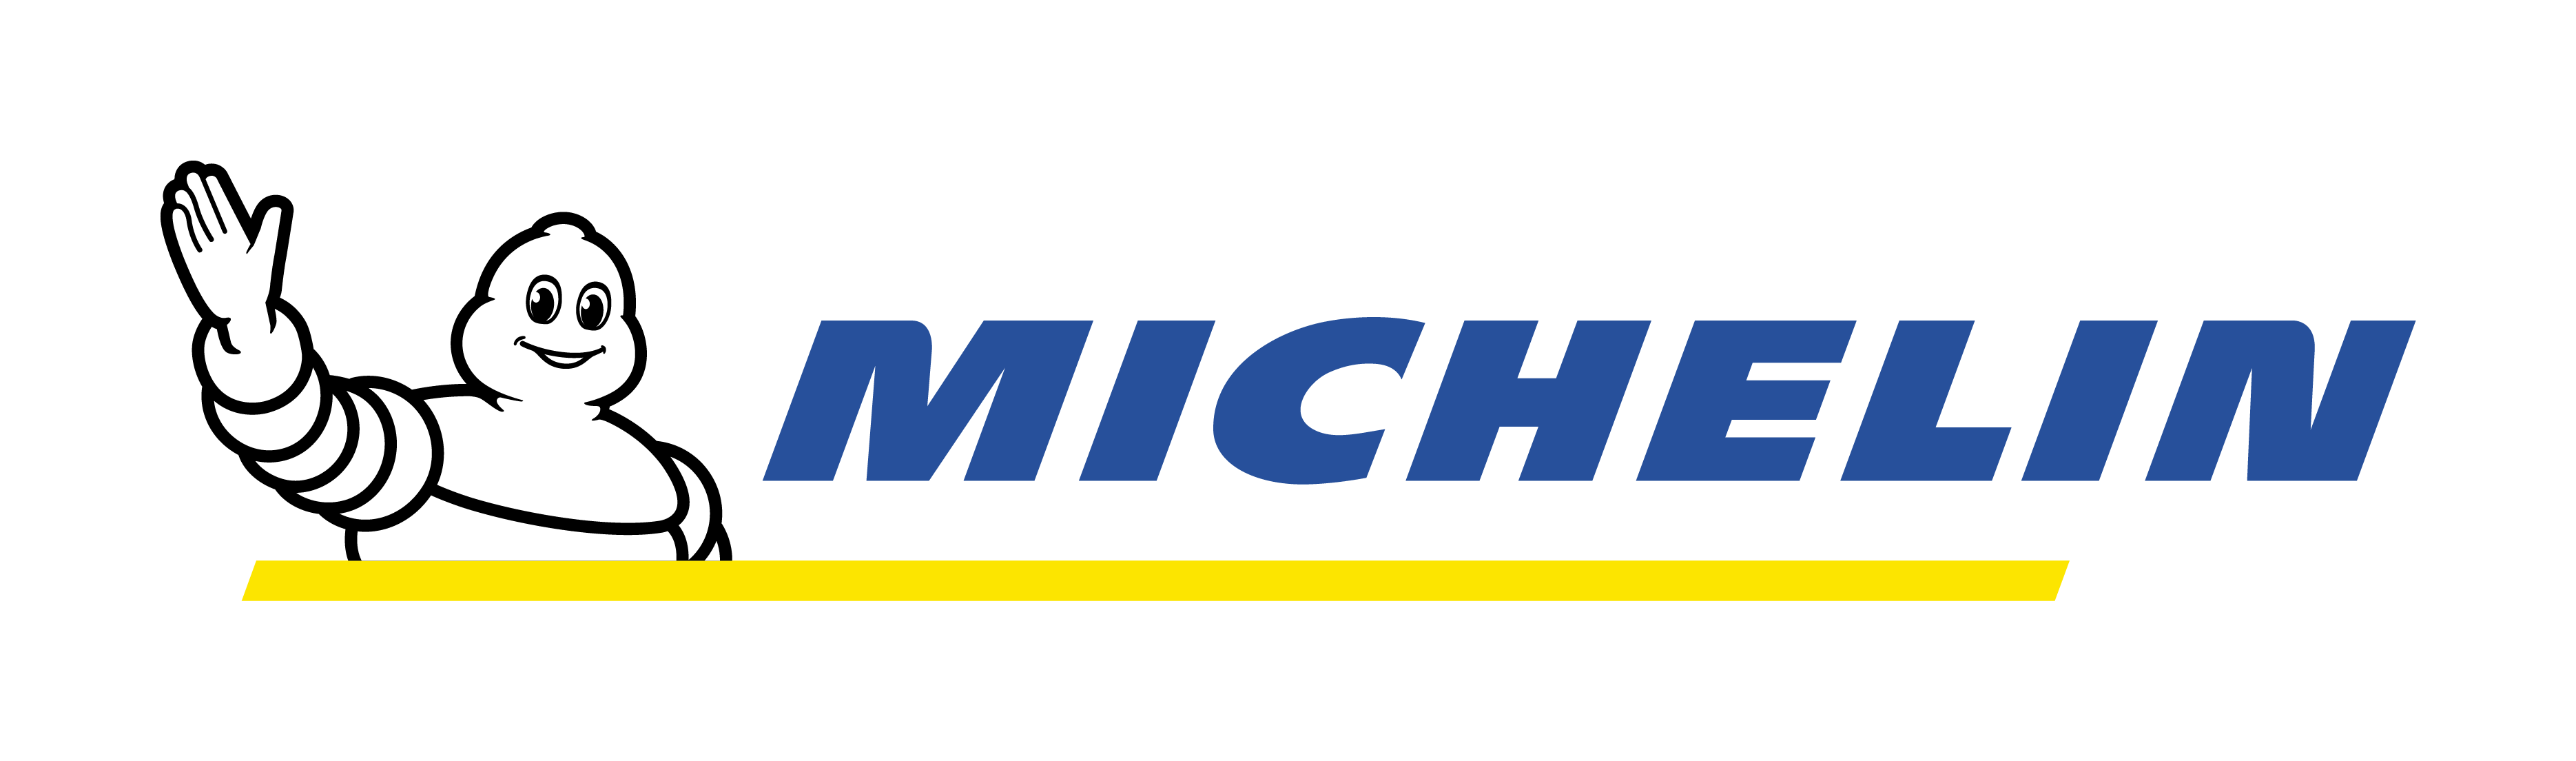 Michelin PNG - 39375